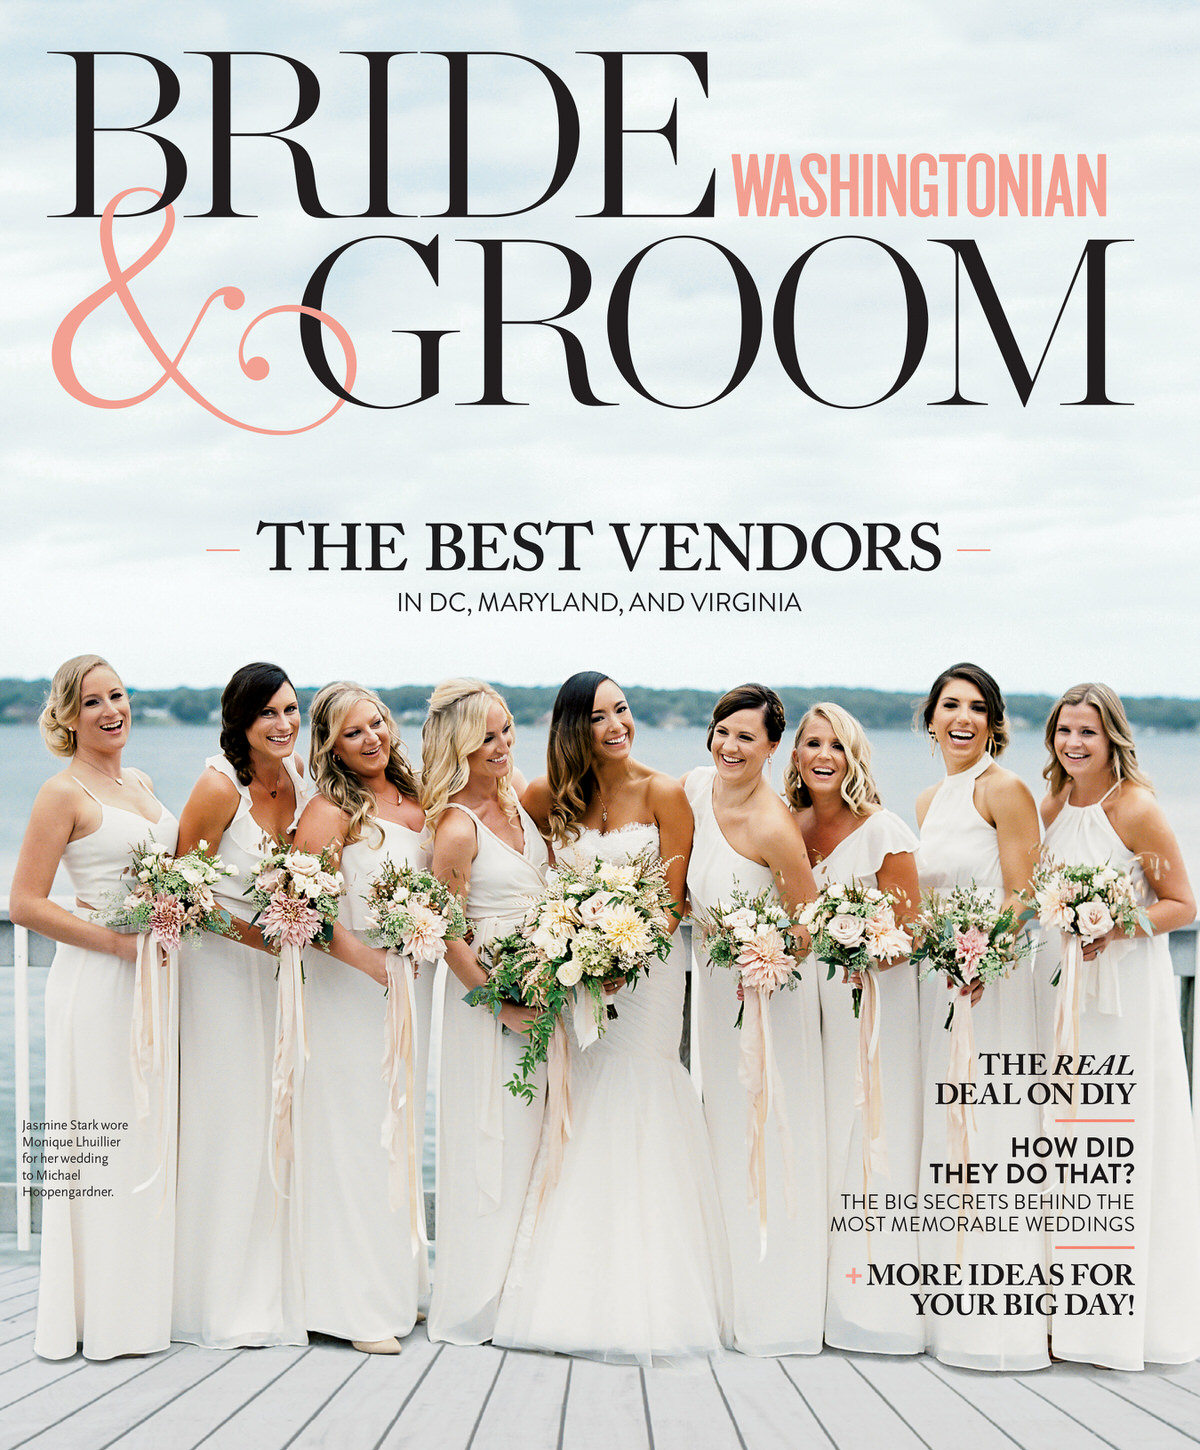 washingtonian-weddings-B&G_summer16_.jpg